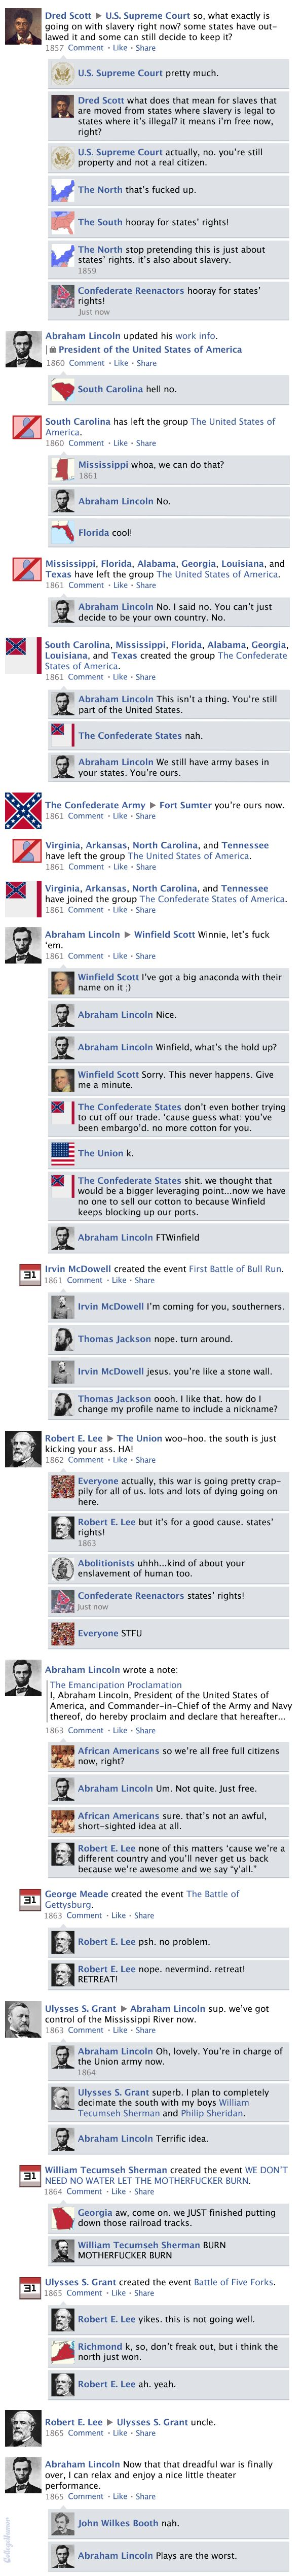 "Facebook Timeline History of the U.S. Civil War    ""k, so, don't freak out, but … – Daniel Williams"